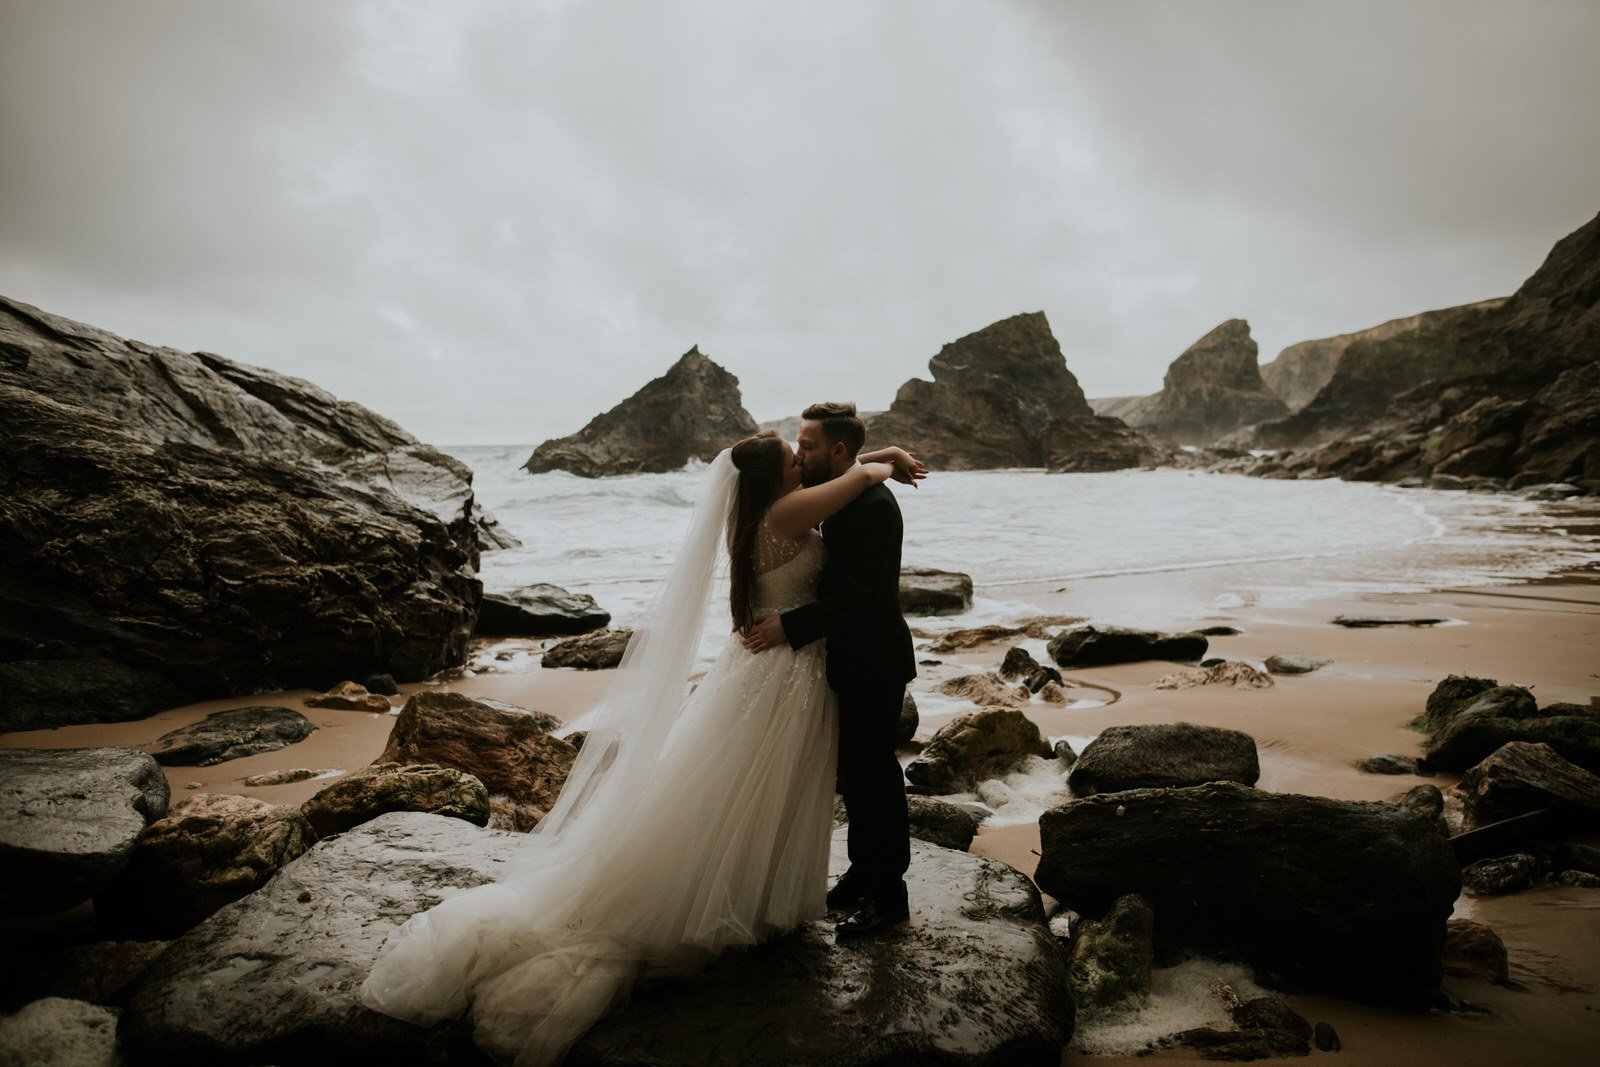 A bride puts her arms around her grooms next and they kiss passionately on a dramatic beach filled with big rocks